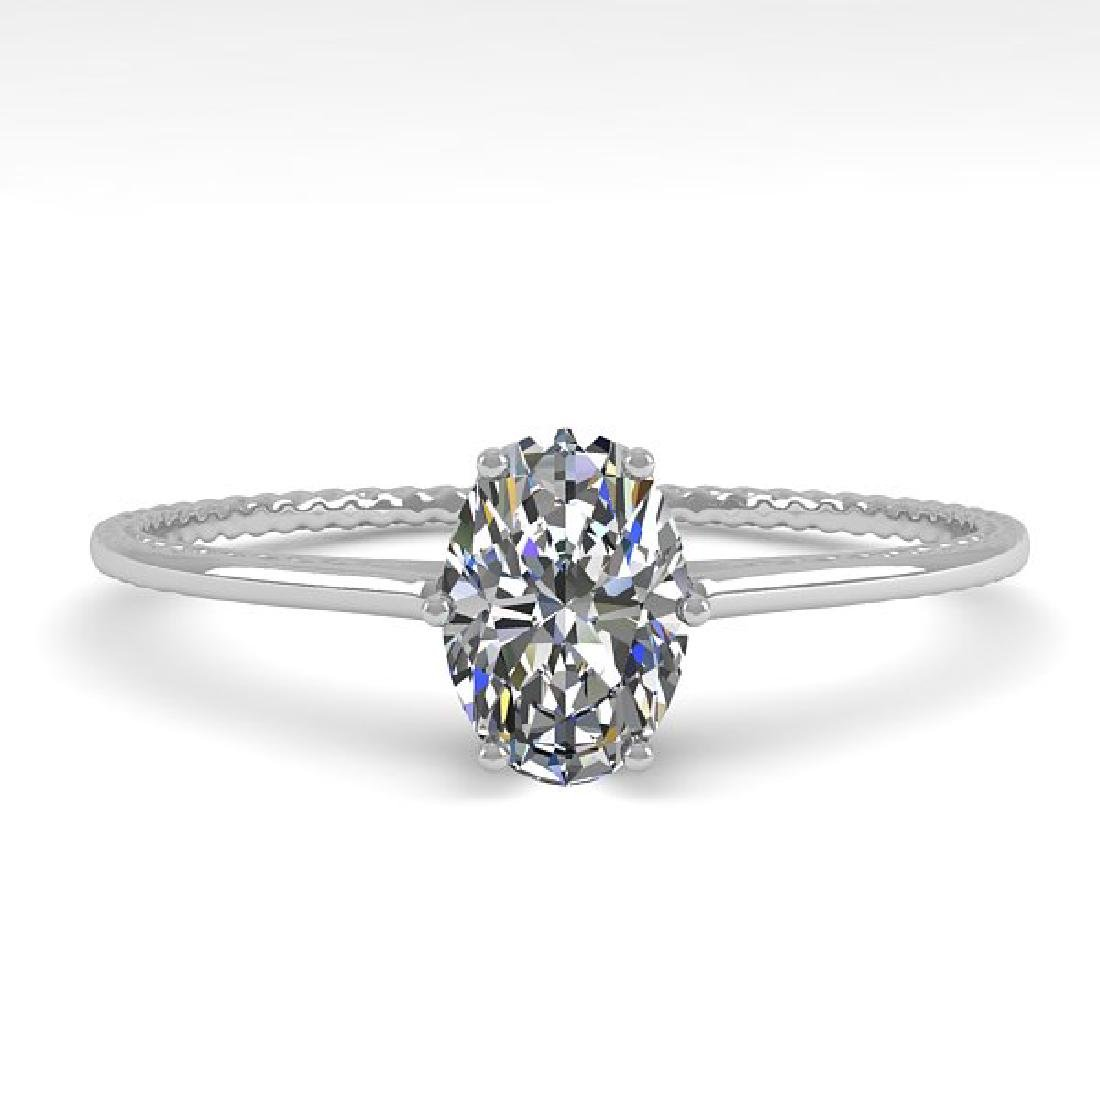 1.0 CTW VS/SI Oval Cut Diamond Art Deco Ring 14K White